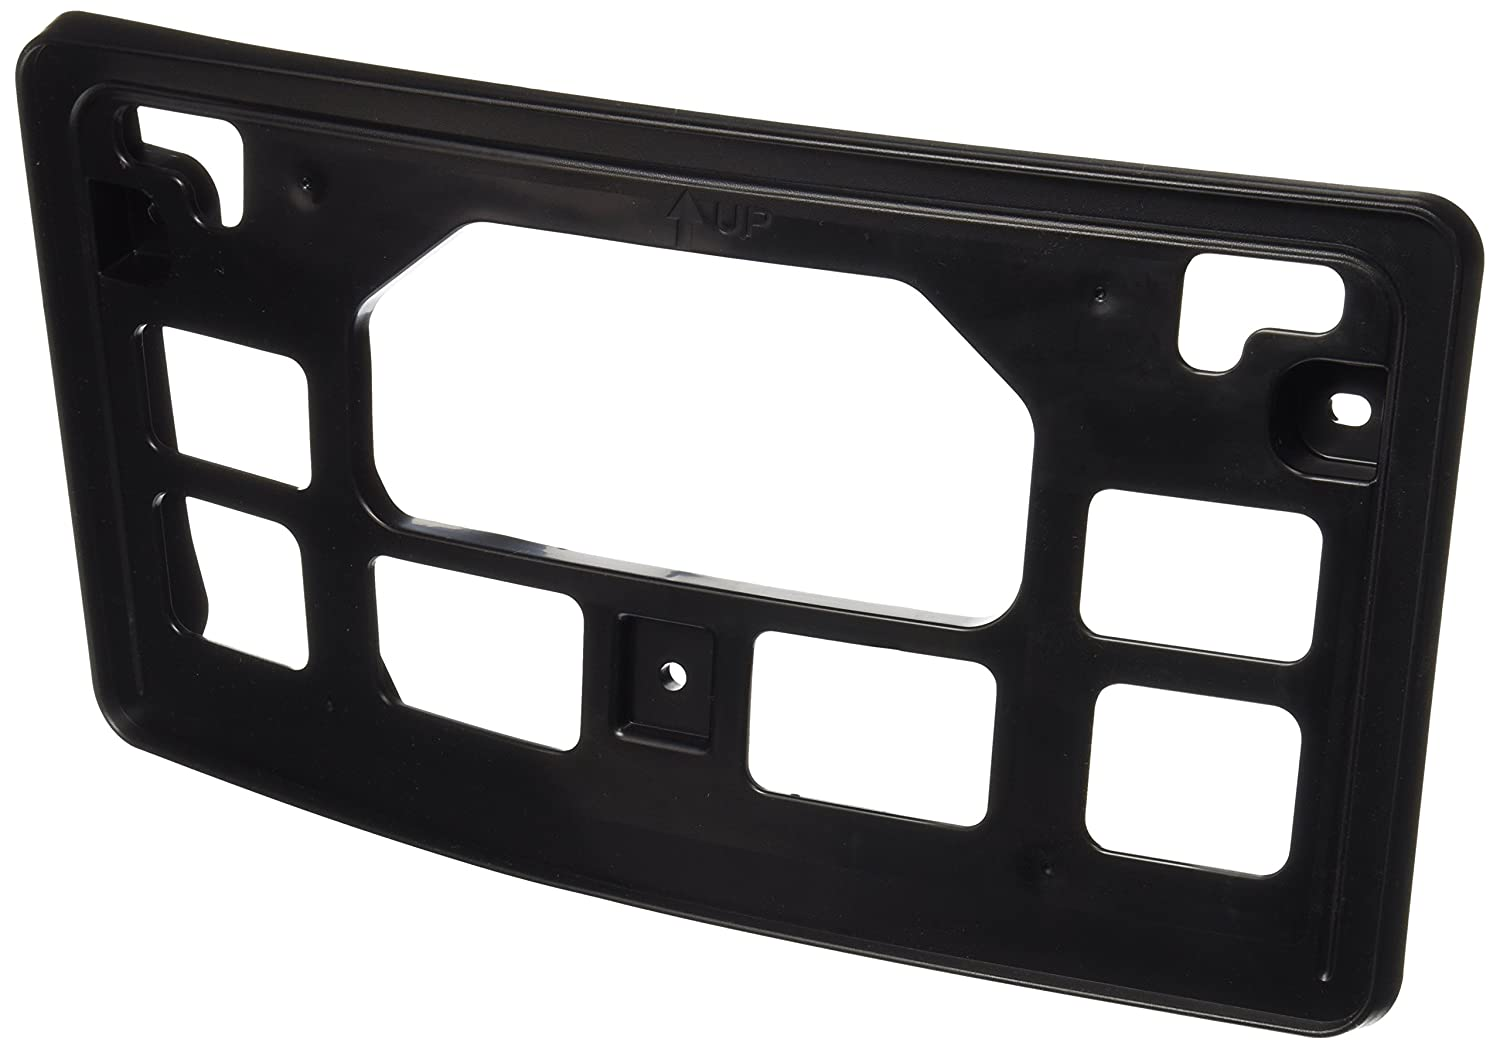 71180-TZ5-A00 License Plate Bracket, Front Genuine Acura